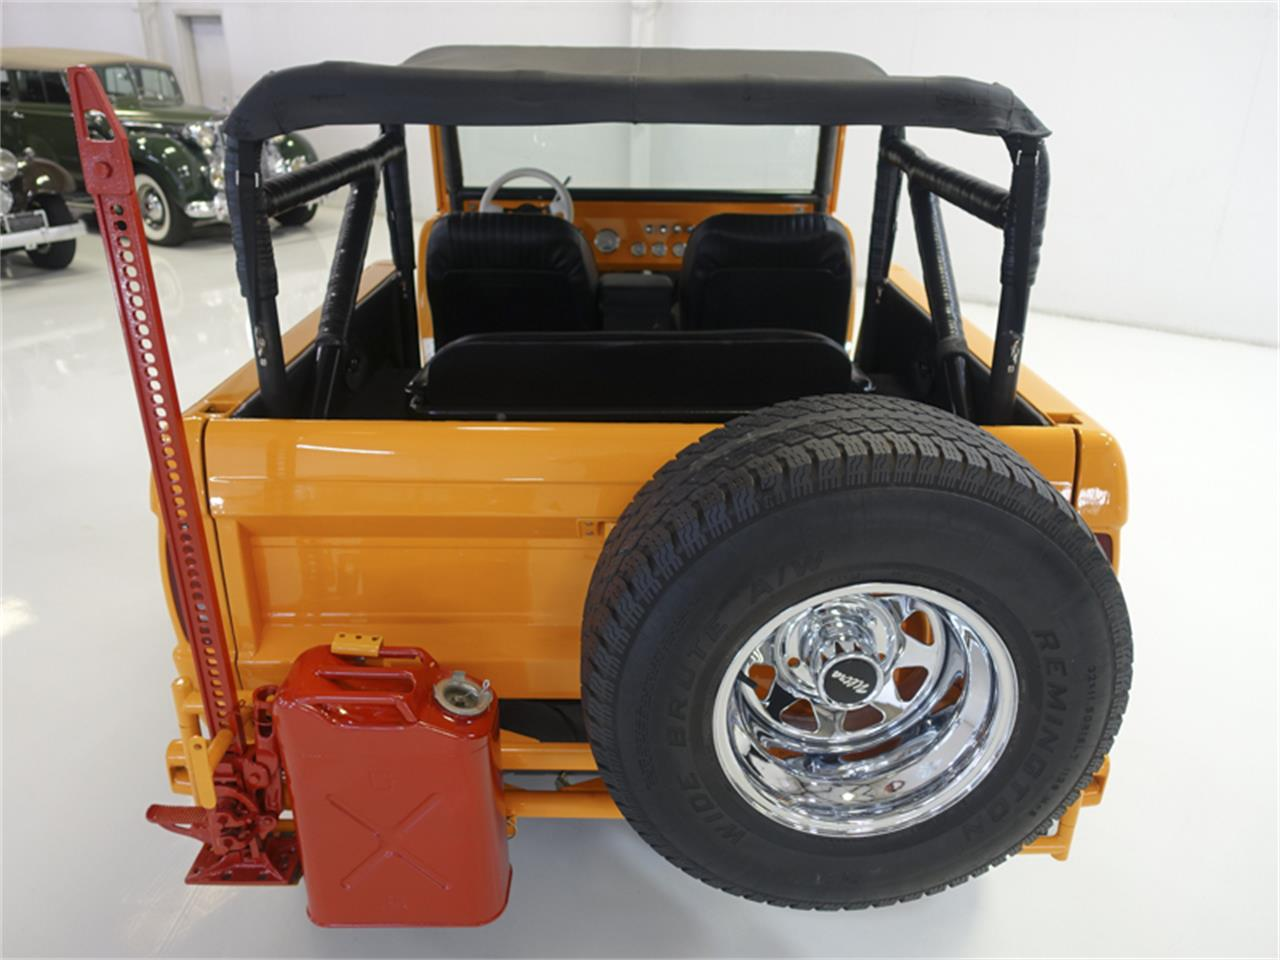 Large Picture of 1967 Bronco located in Missouri - $49,900.00 Offered by Daniel Schmitt & Co. - QIAT